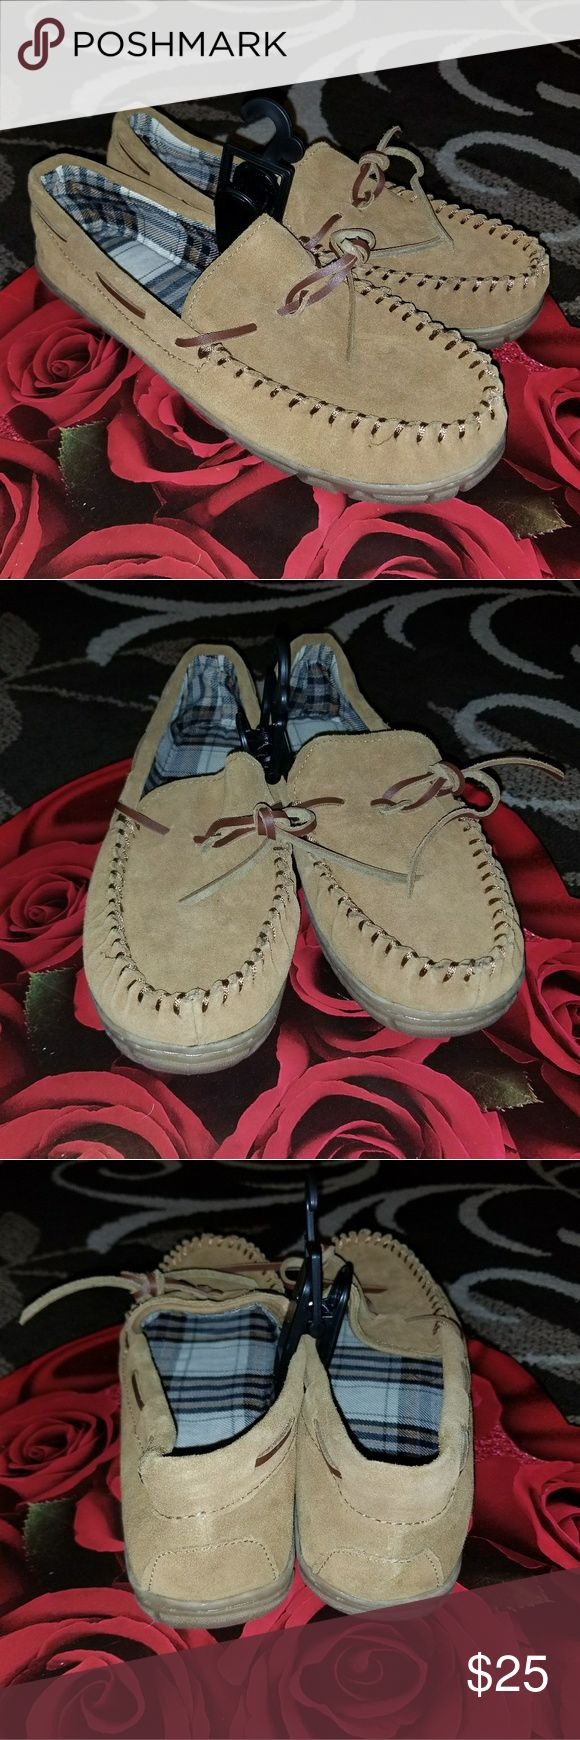 Men's Moccasin Slippers Men's Moccasin Slippers,  Size S (7-8)  Color Tan, Brand New, Never worn,  Genuine Leather!!!  Nice COMFORTABLE Slip-Ons!!! Have any questions before purchase just ask and I'll try to answer!!!  All Sales Are Final!!!  NO RETURNS!!! Shoes Loafers & Slip-Ons